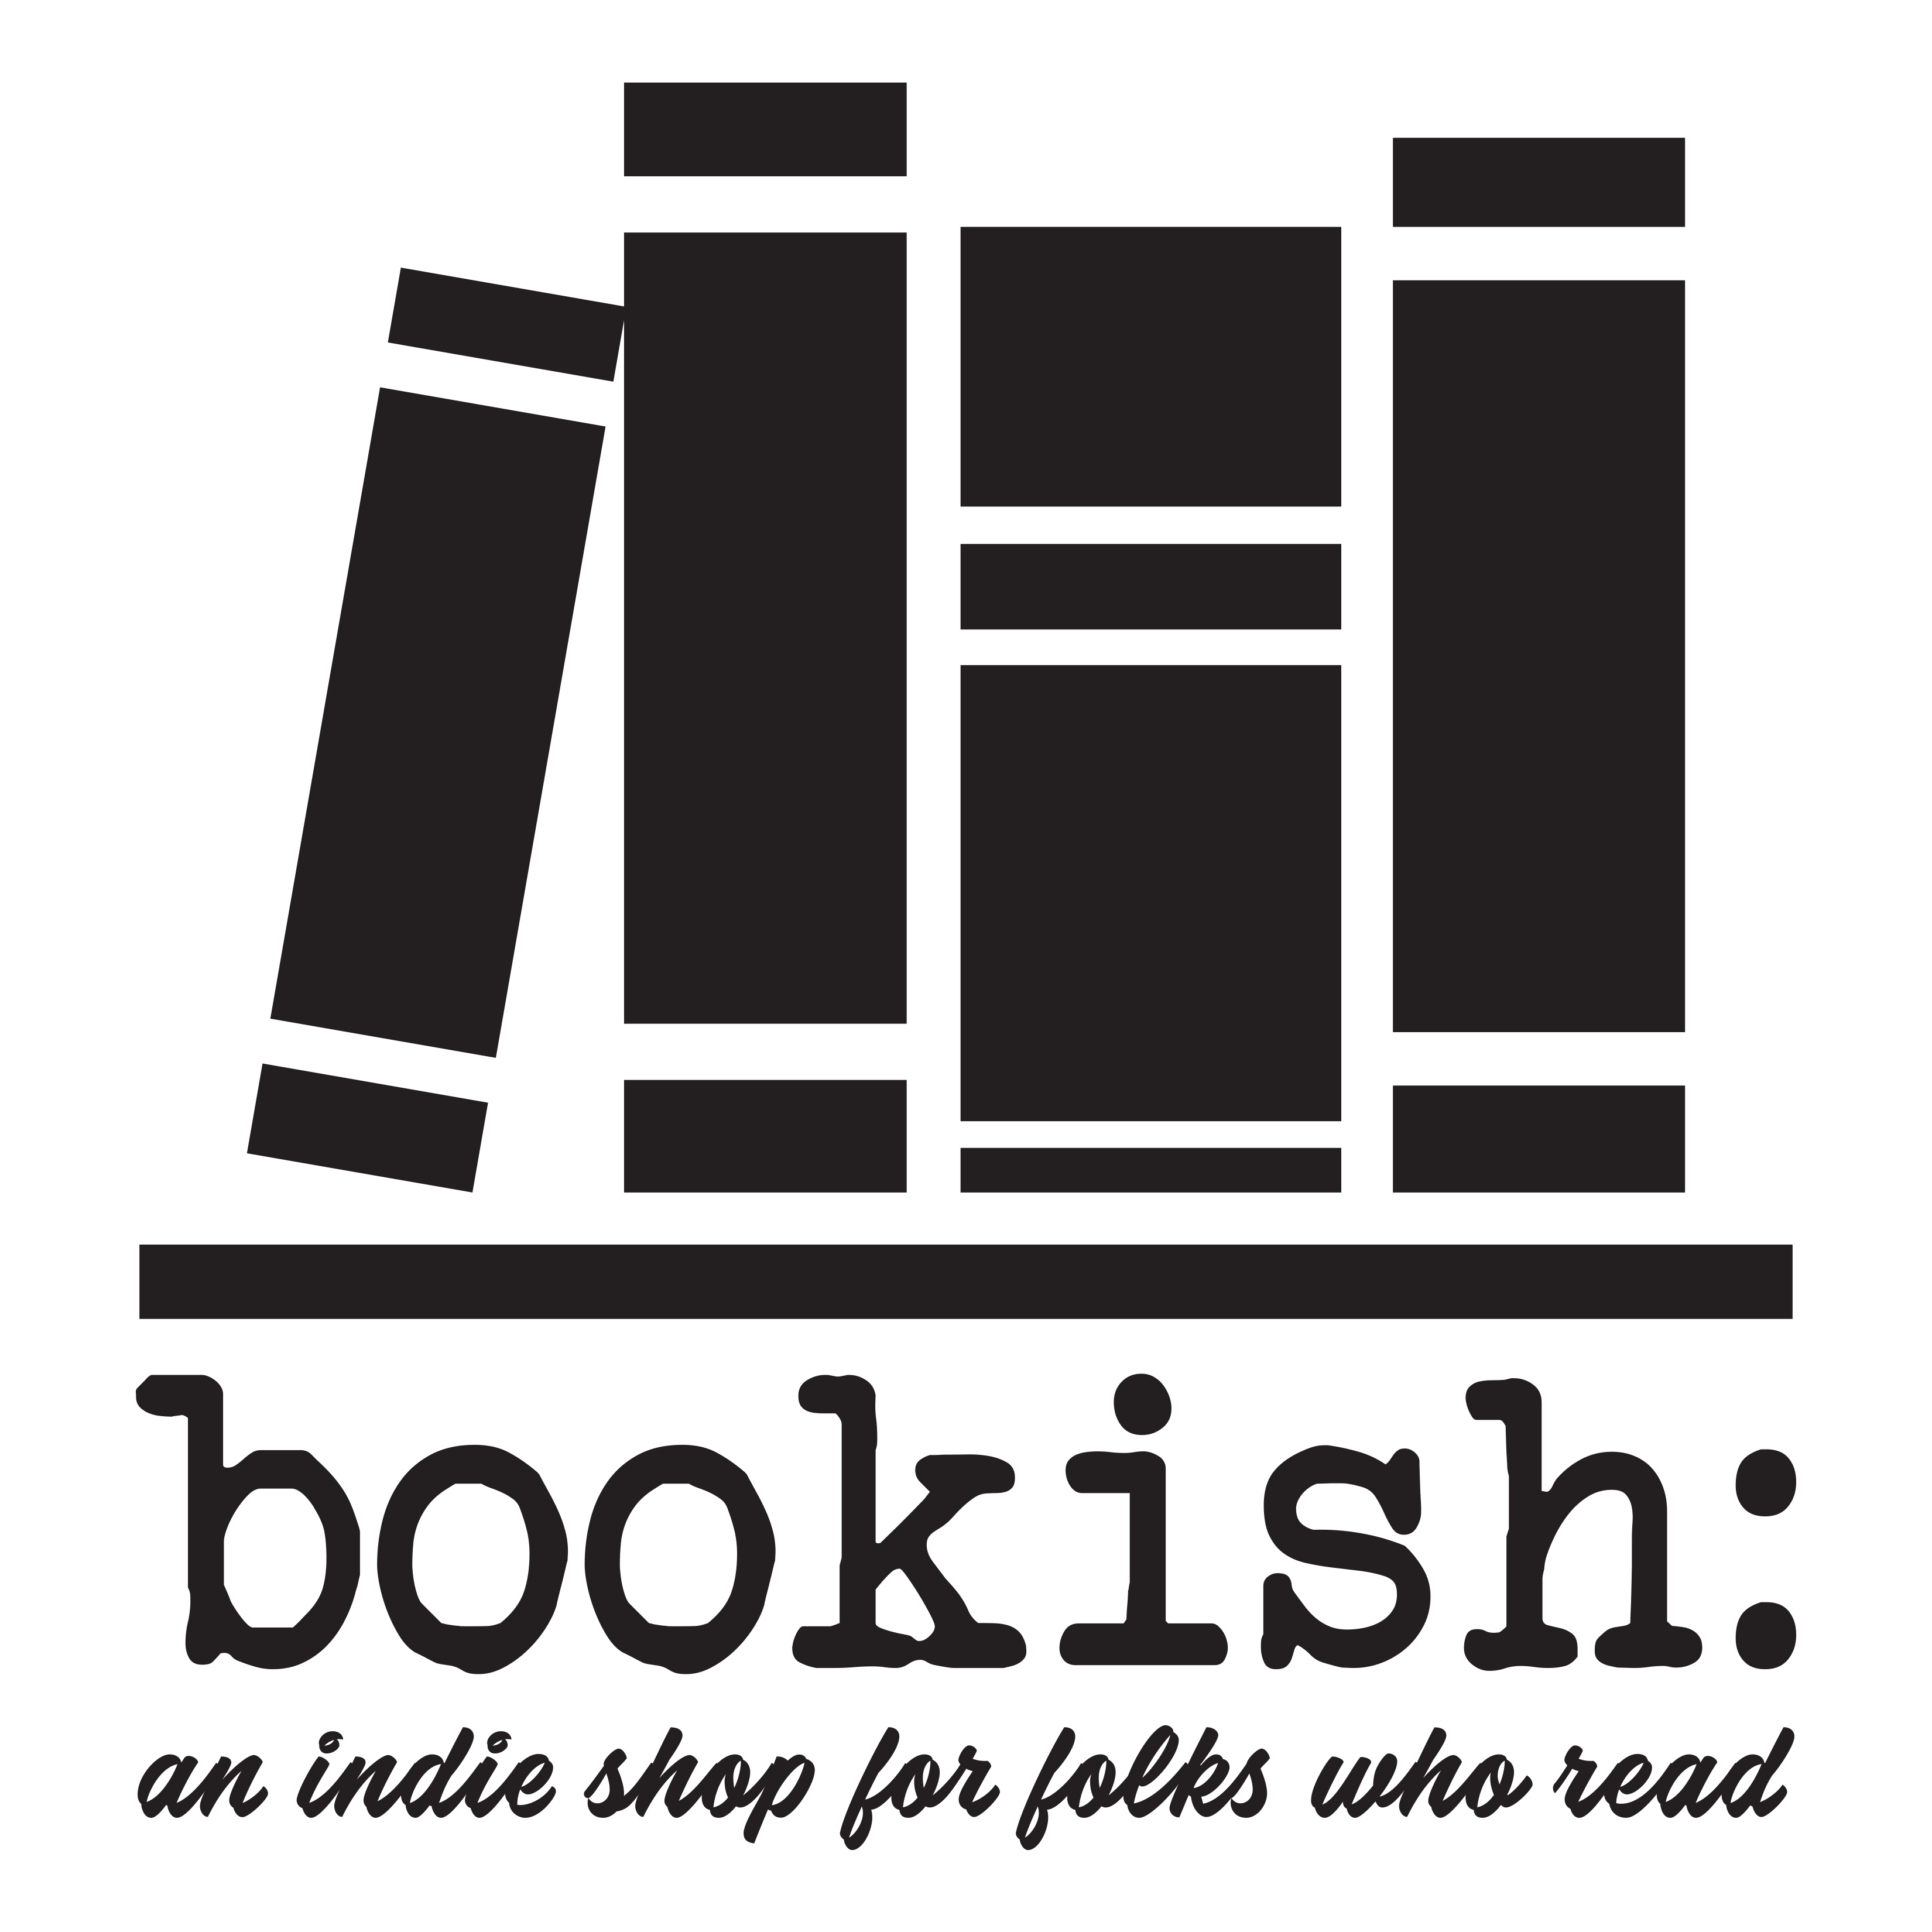 Bookish: an indie store for those who read logo